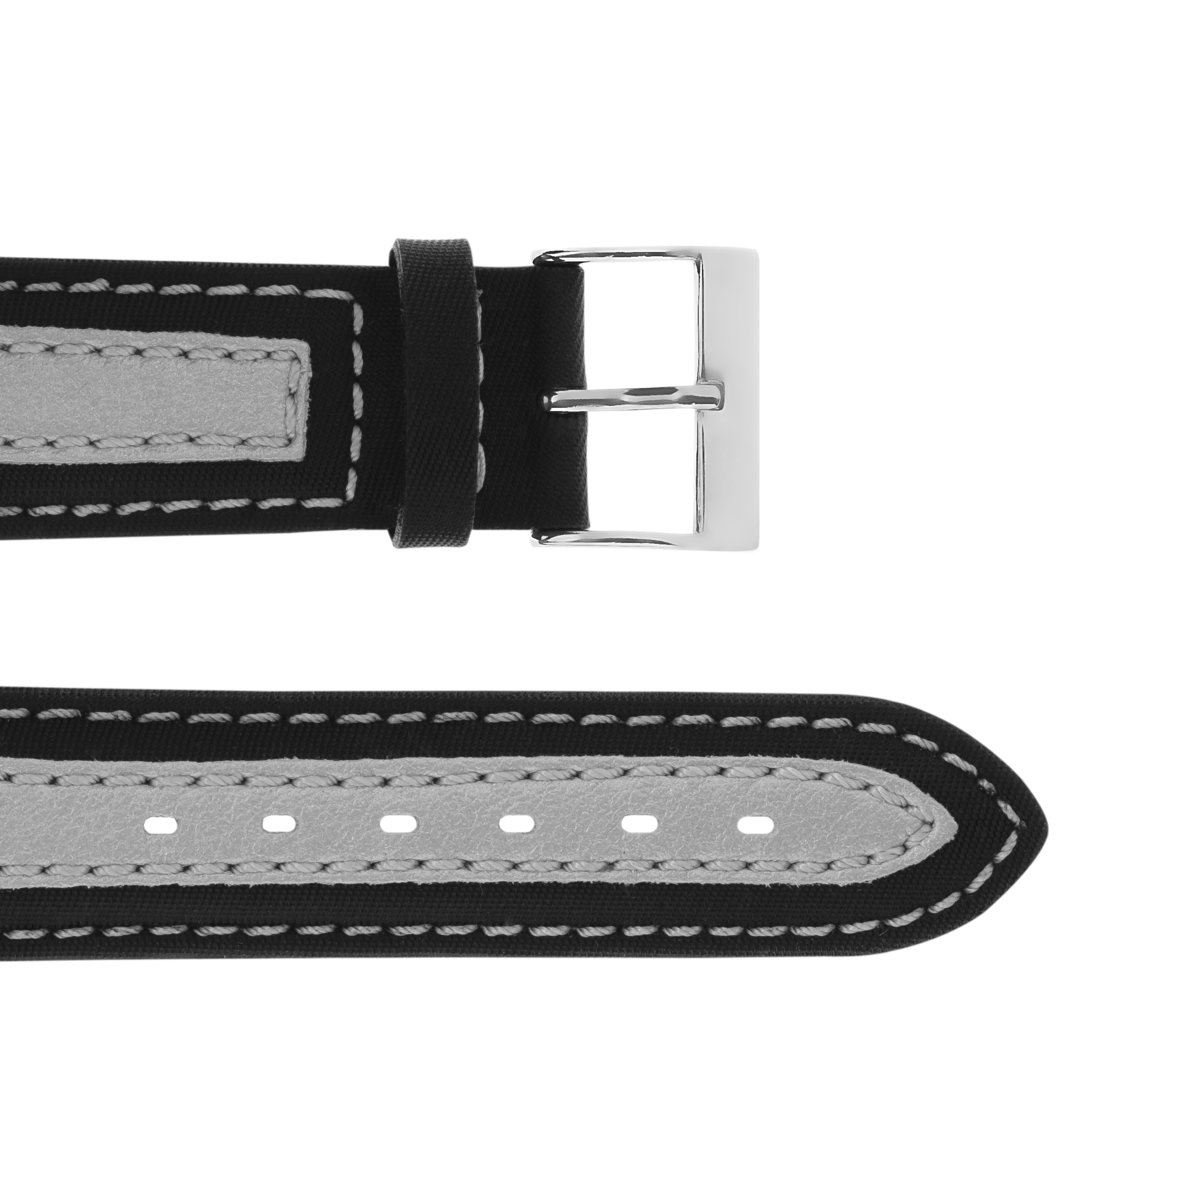 Plastic Wristband with Leather Patch Black-silver 20 mm Silver Thorn Buckle Silver Seam Textured